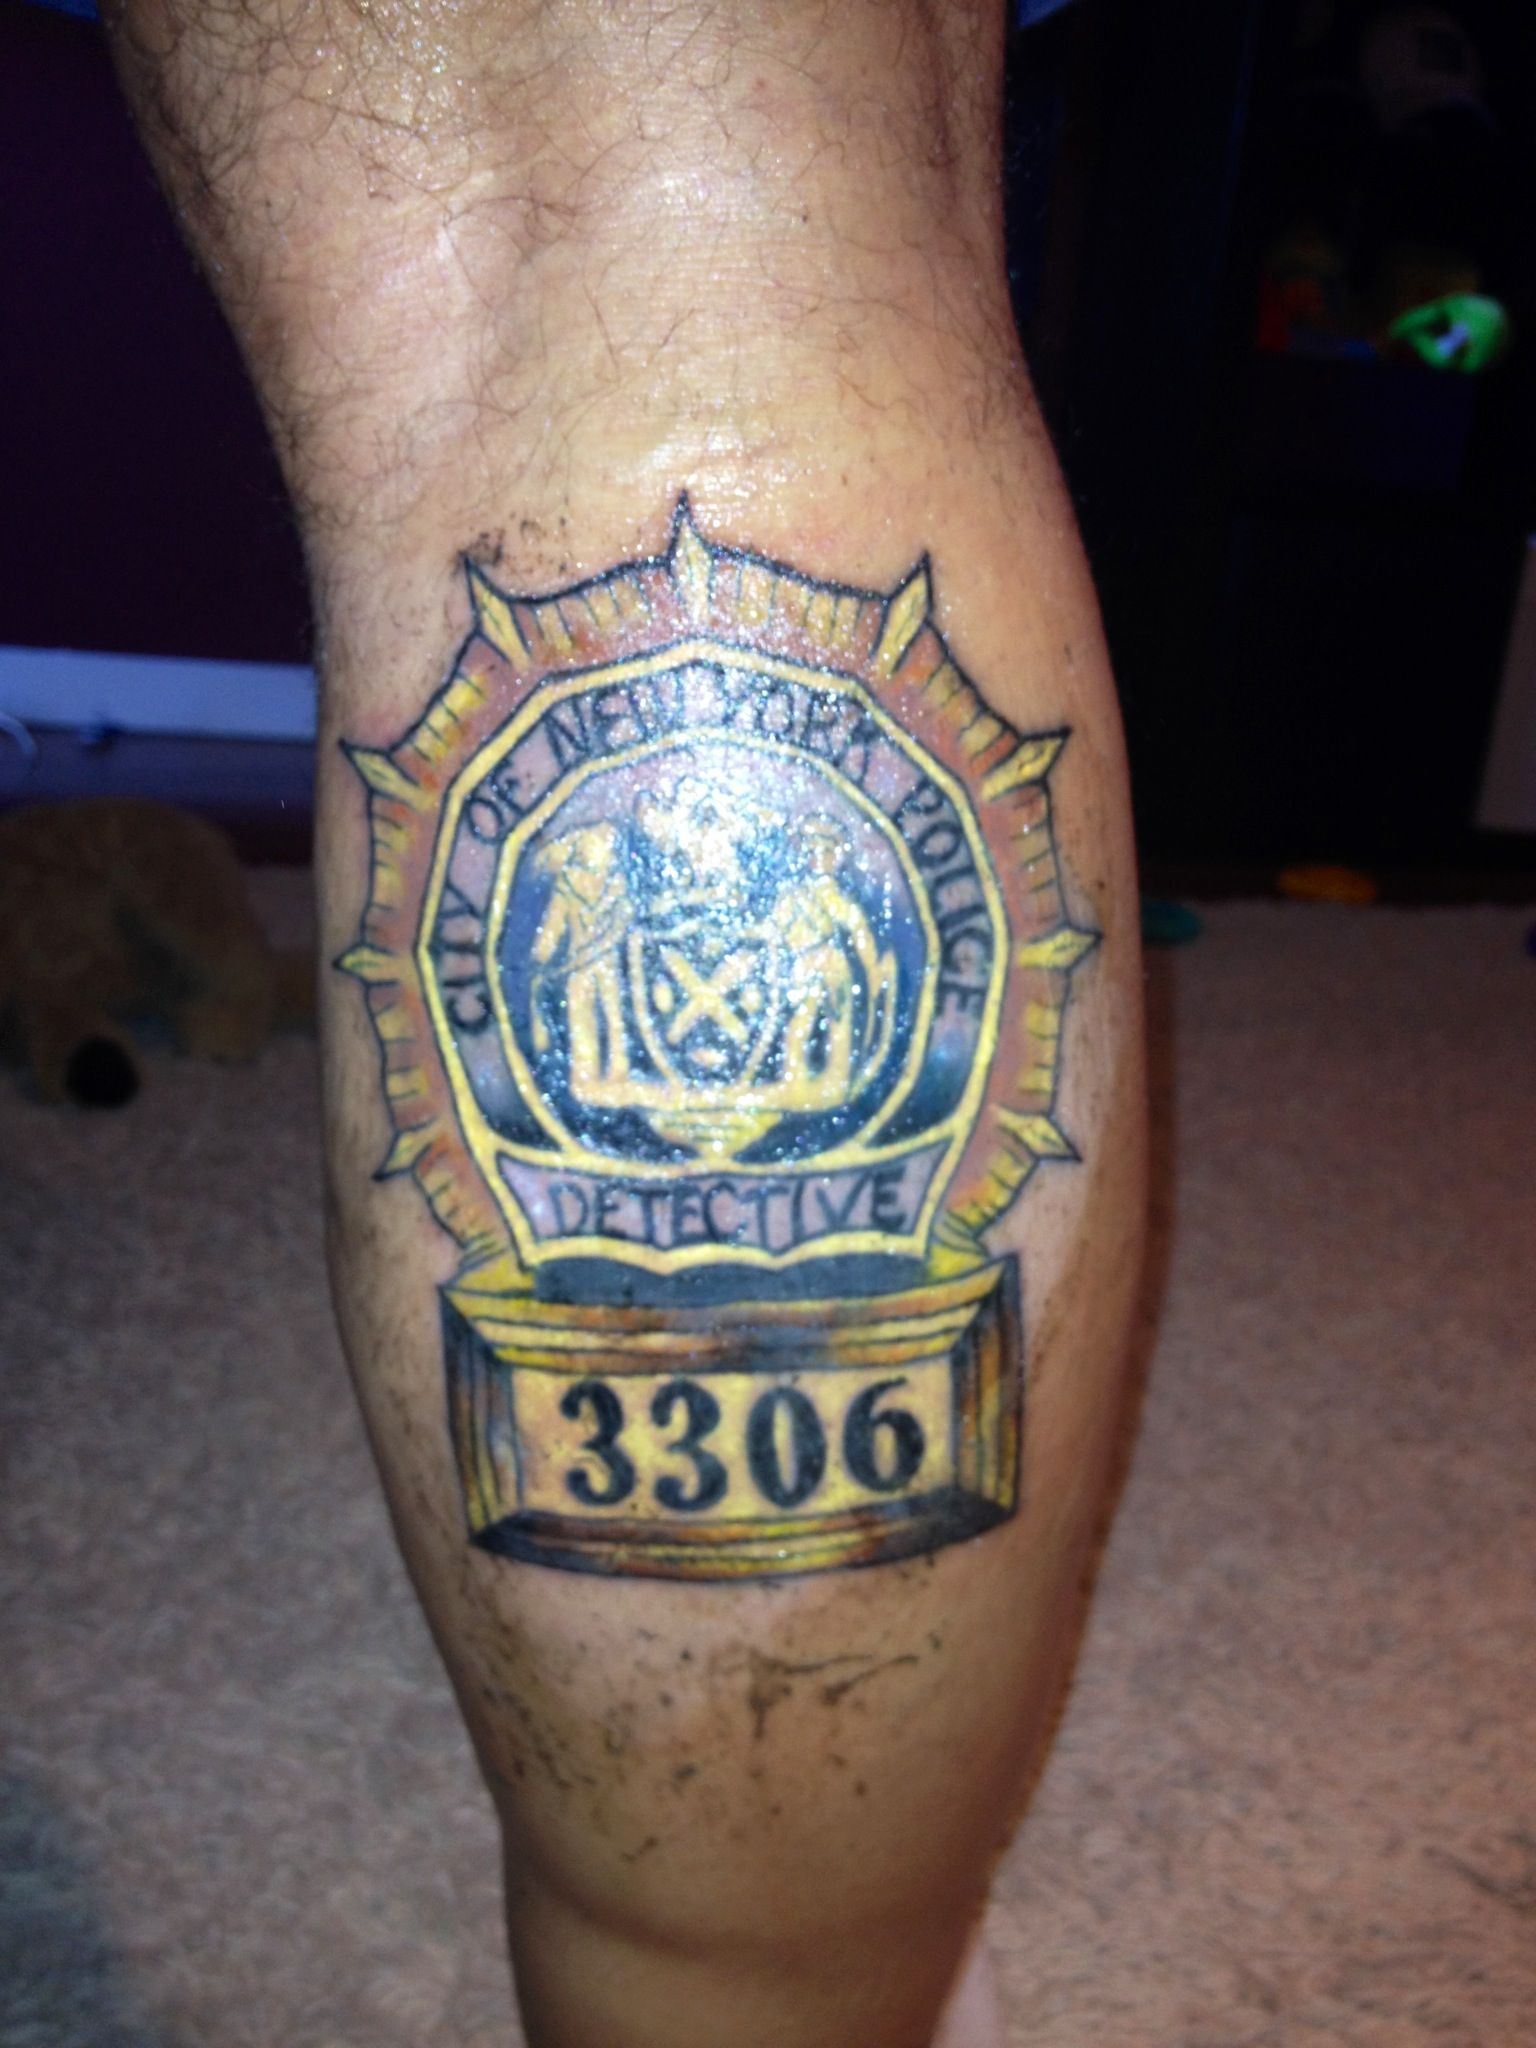 NYPD tattoo #4015 | NYPD | Pinterest